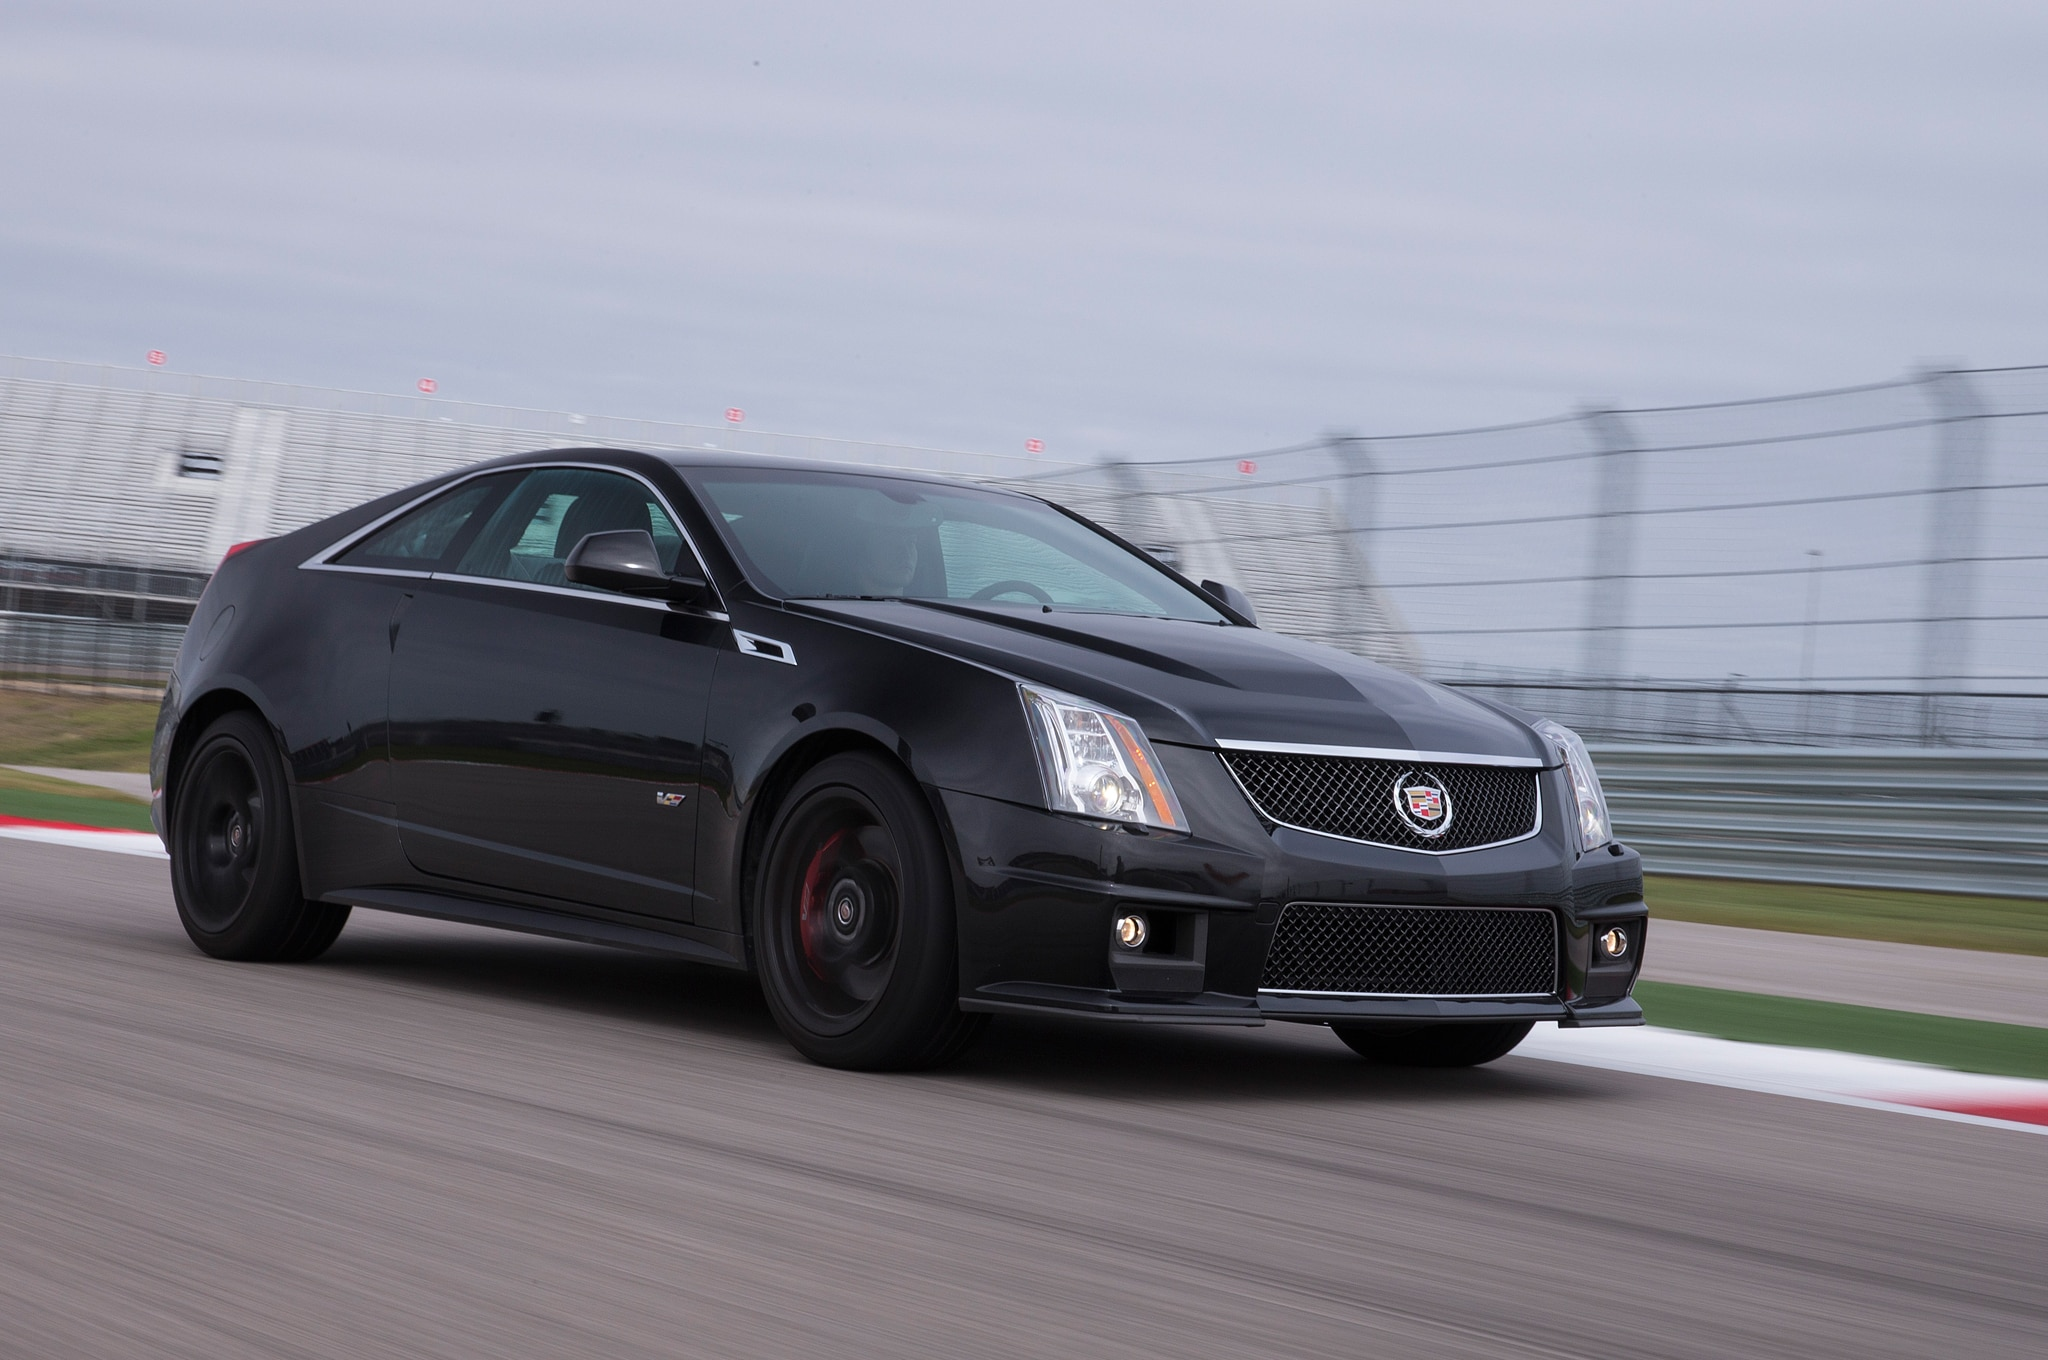 cadillac top escalade news and speed truck cars reviews